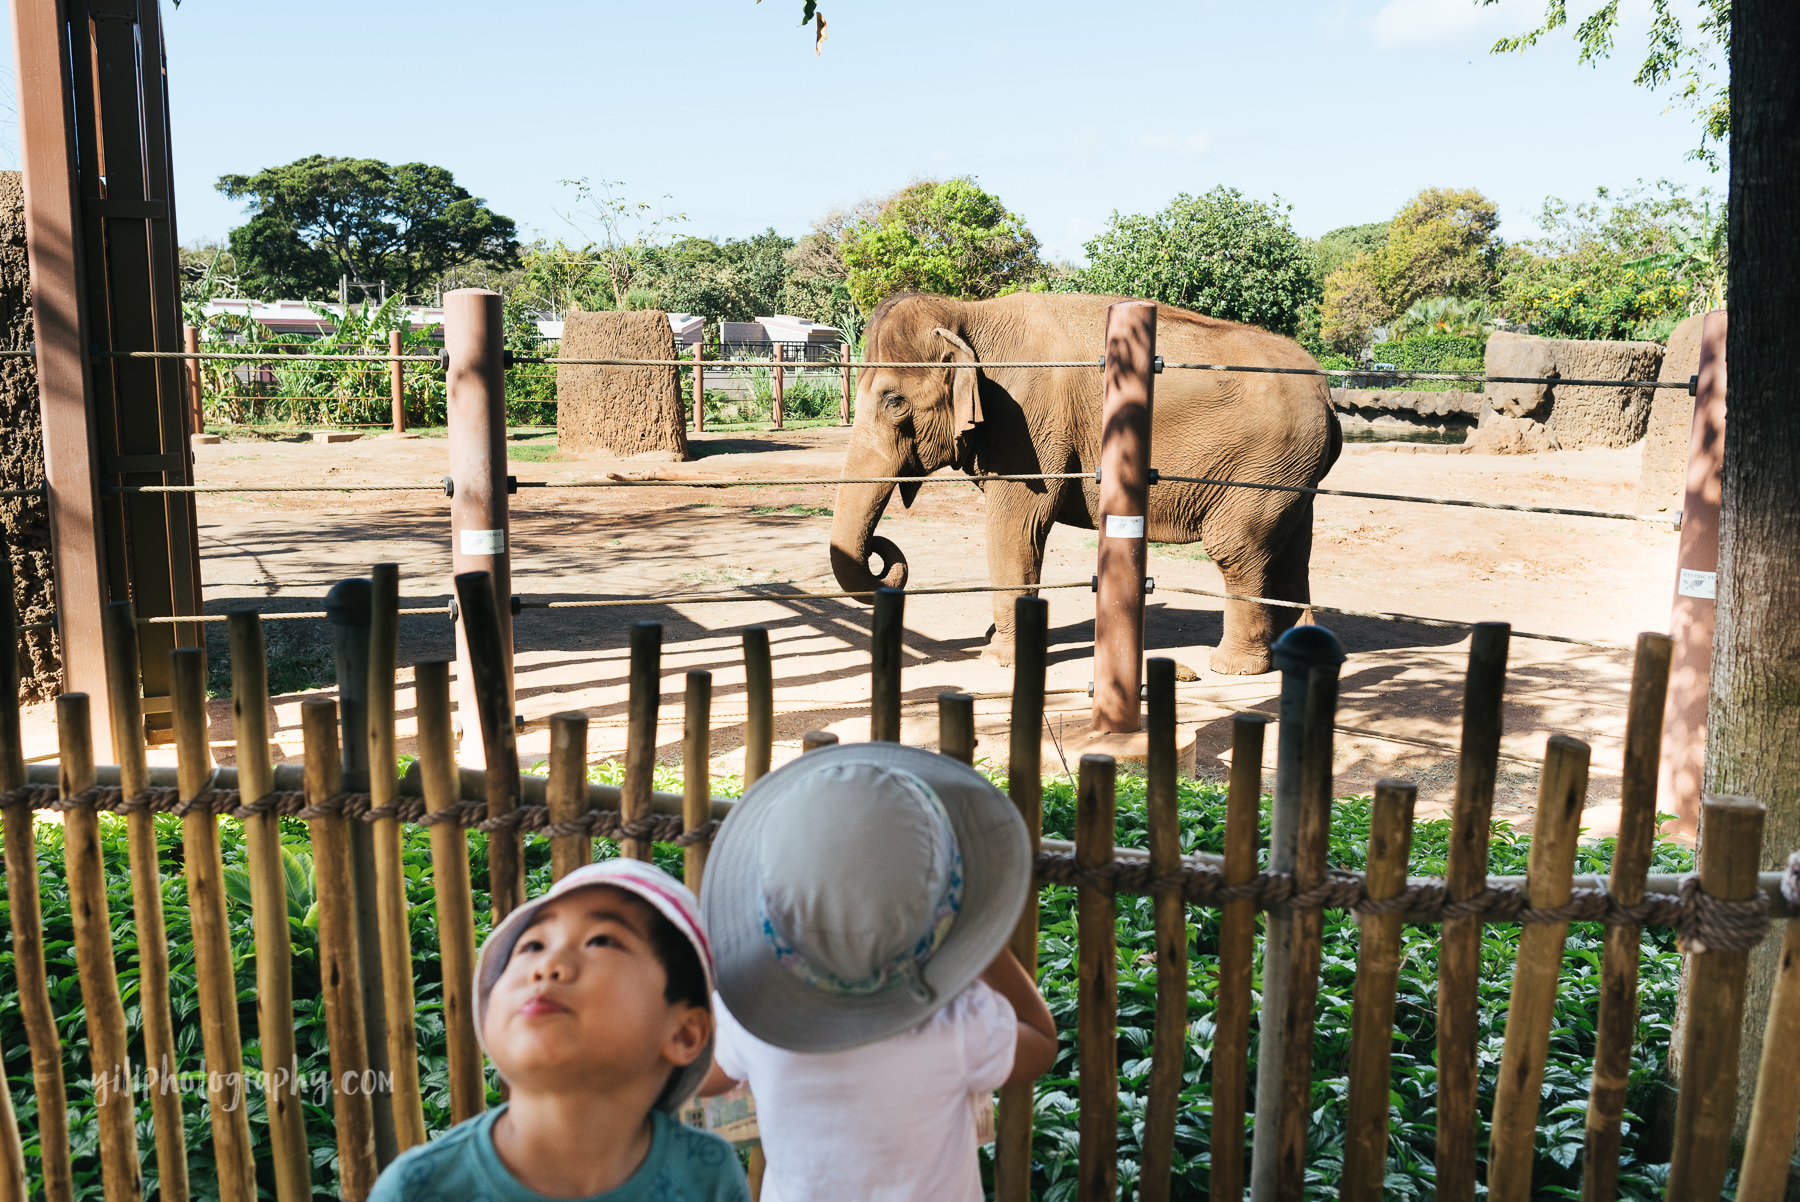 girl watching elephant at zoo